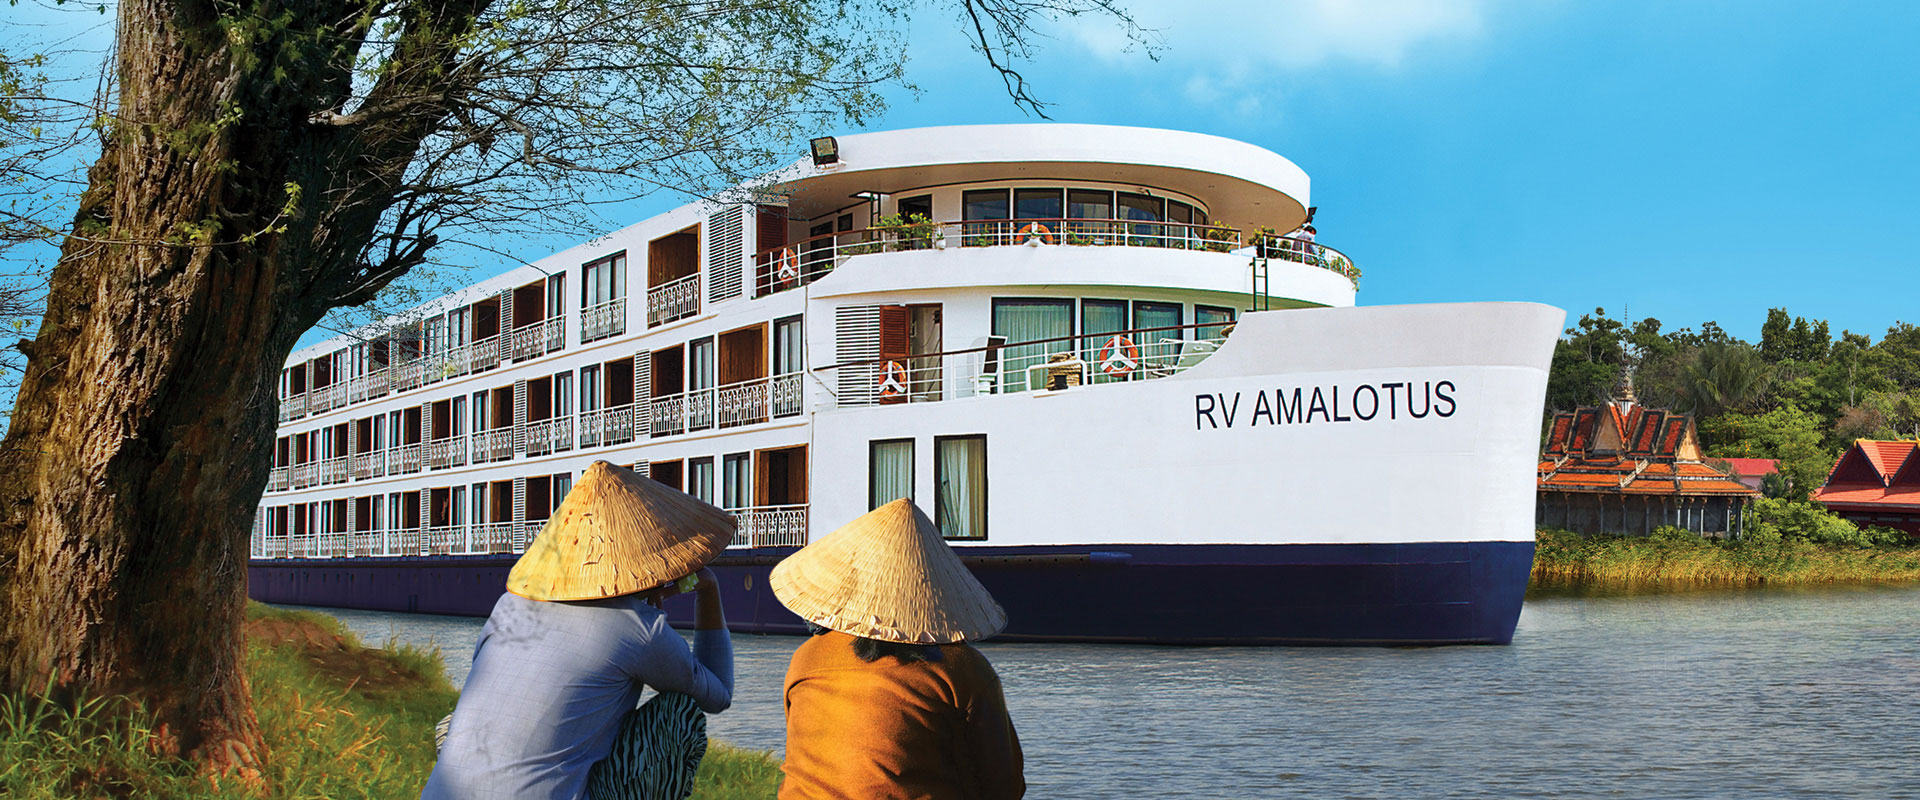 RV Amalotus Cruise